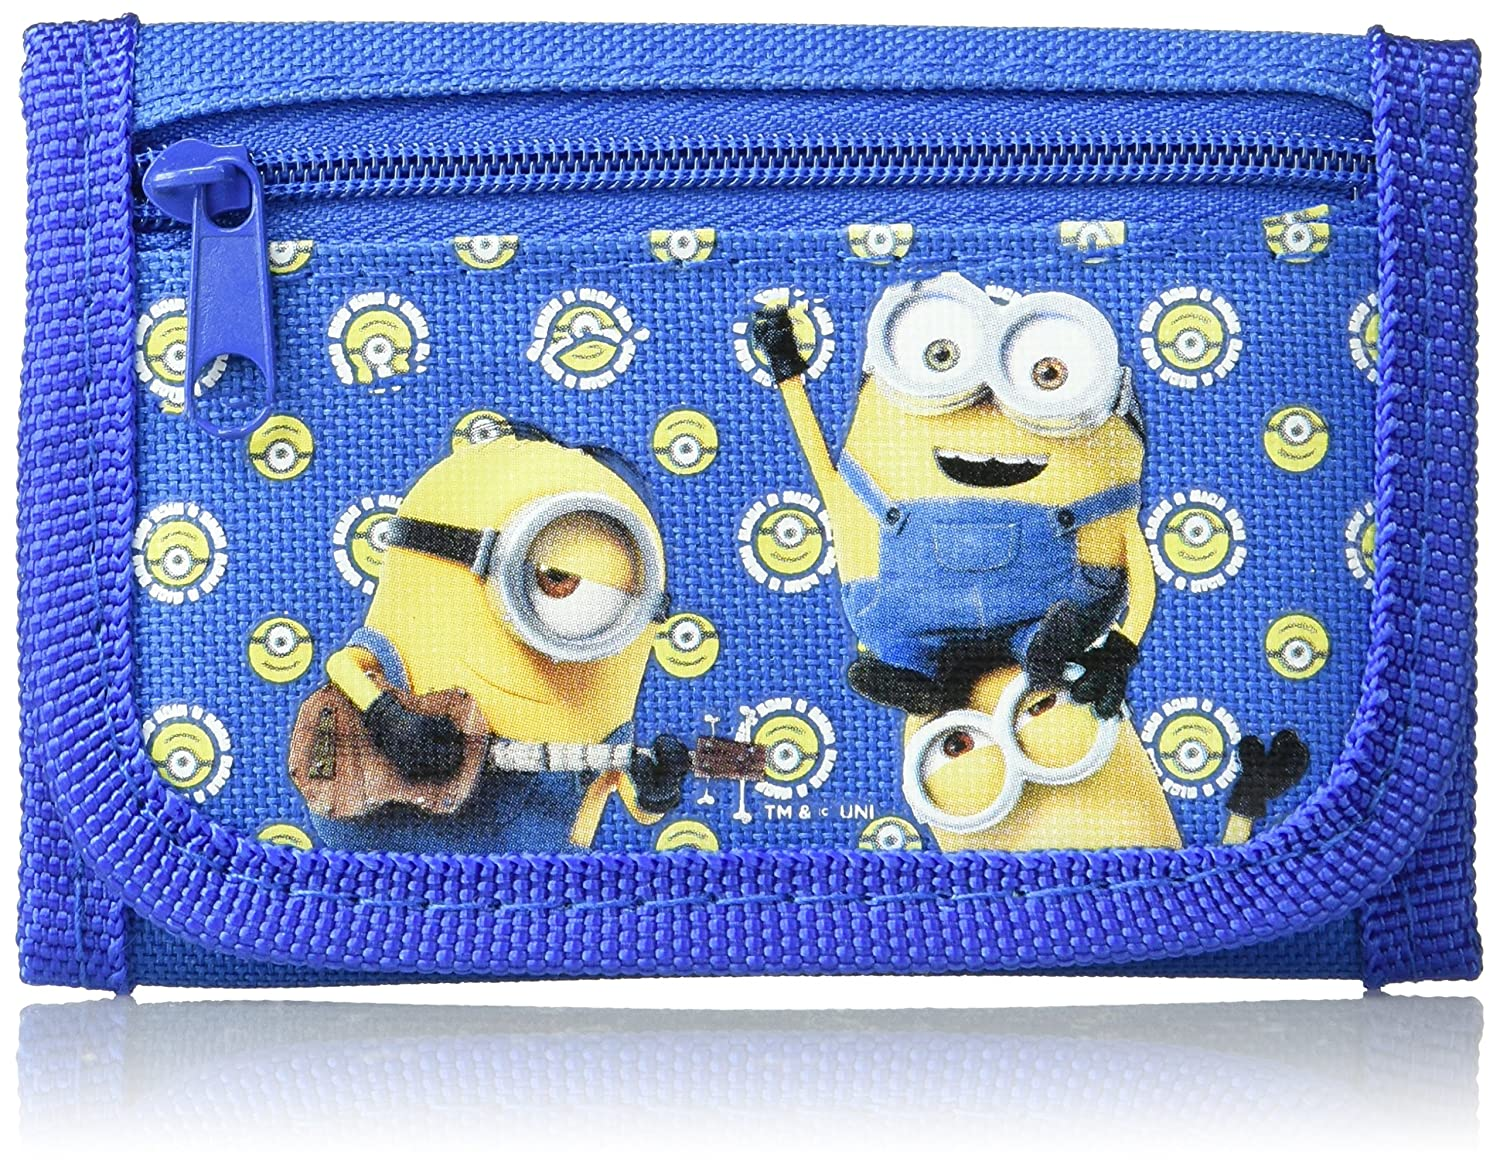 Despicable Me Minions Authentic Licensed Trifold Wallet (Black) Accessory Innovations 920207MRG